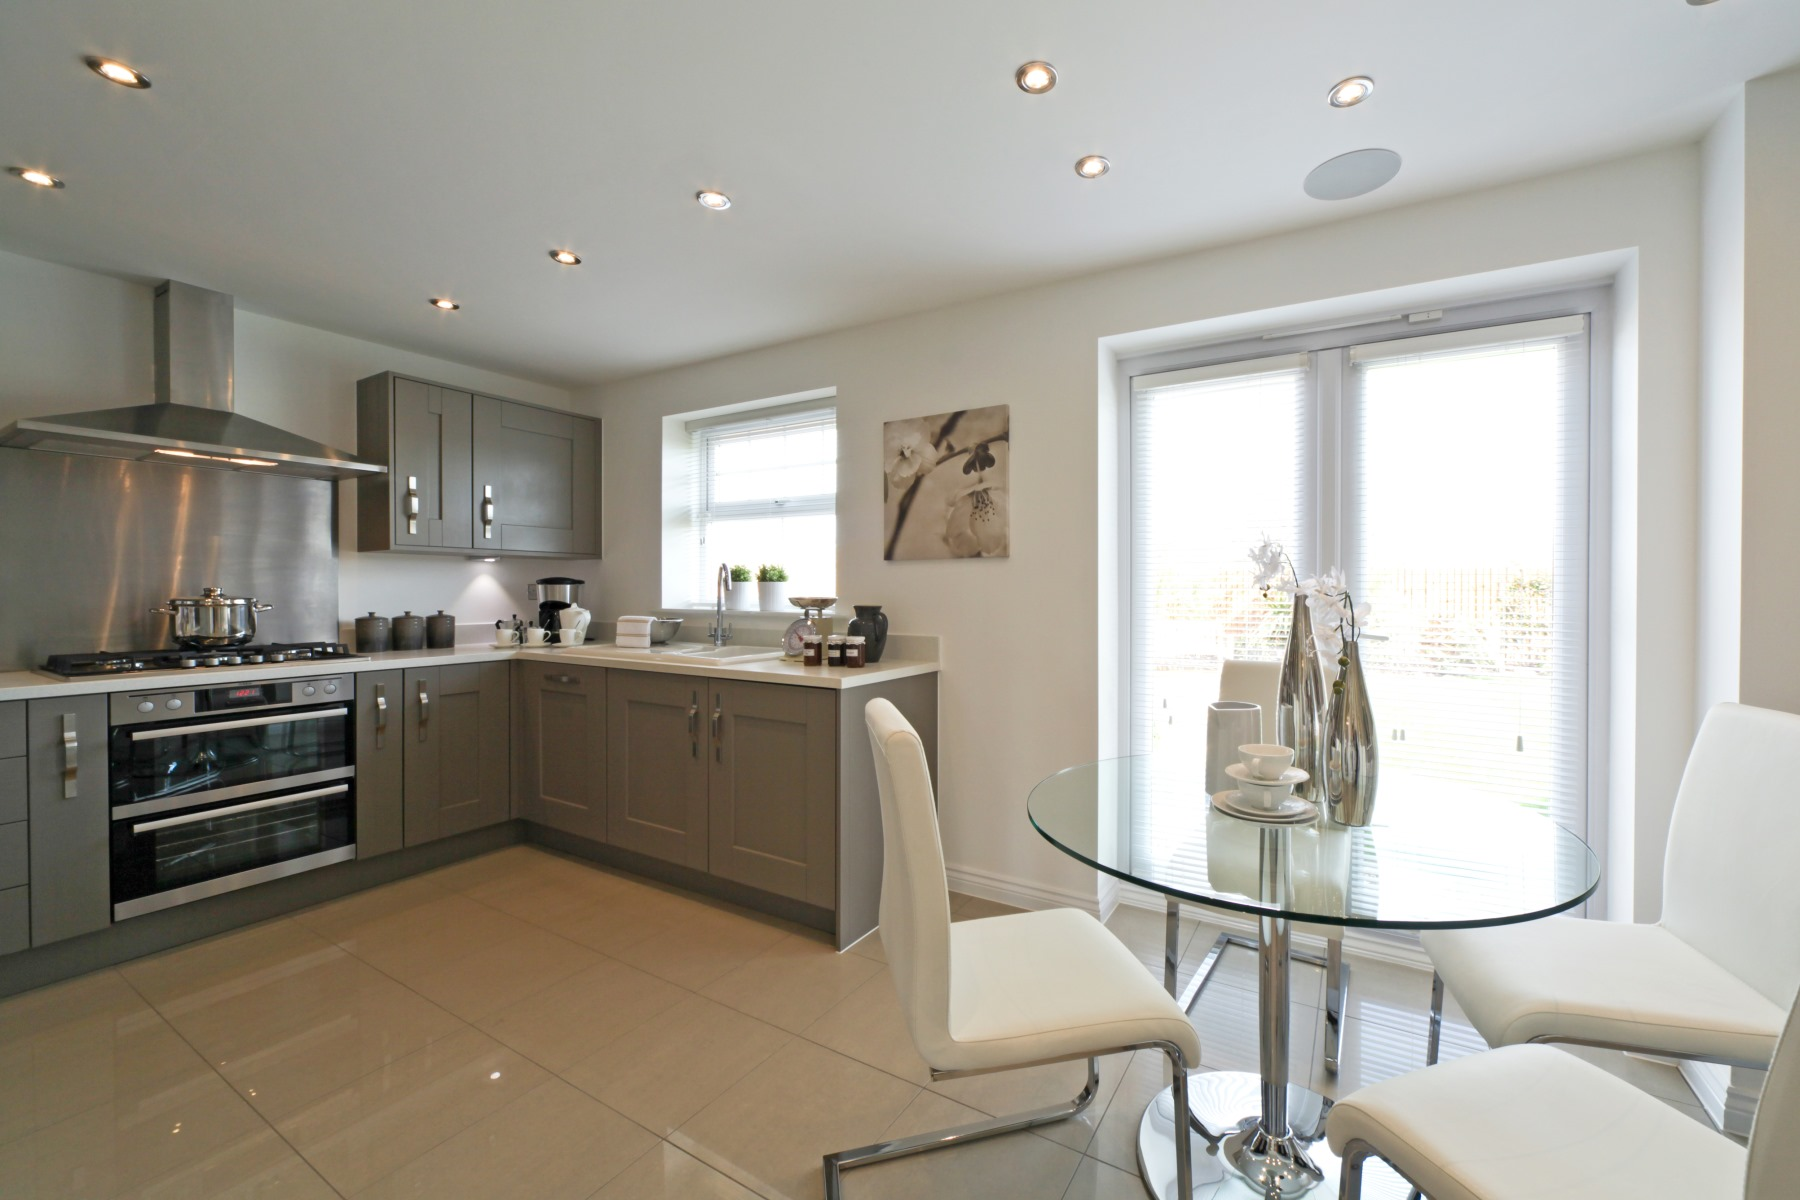 Eynsham Showhome Kitchen/Dining Area